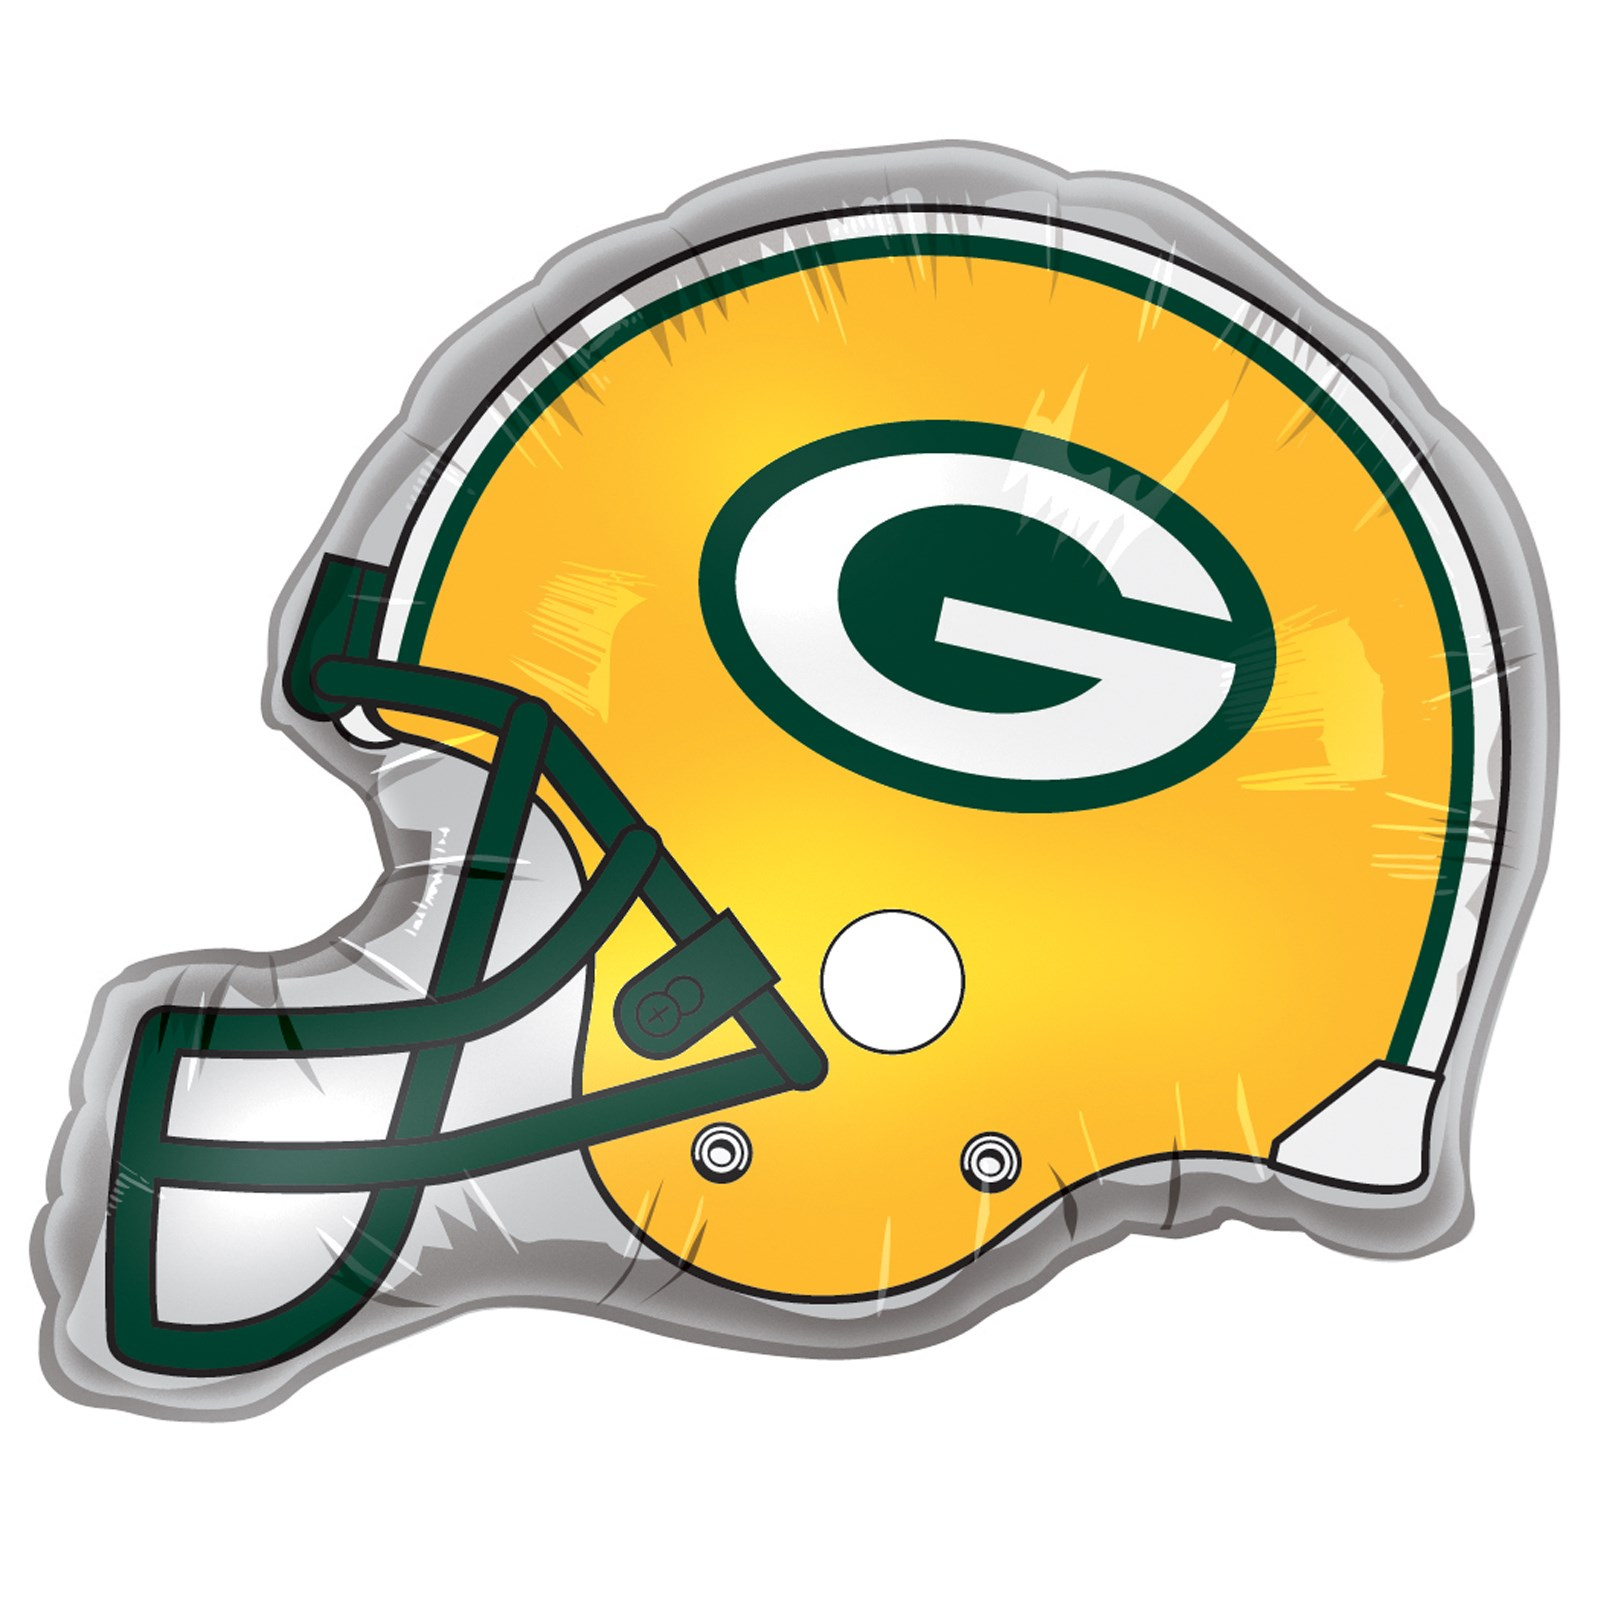 Green Bay Packers Helmets Through The Years Green Bay Packers Helmet